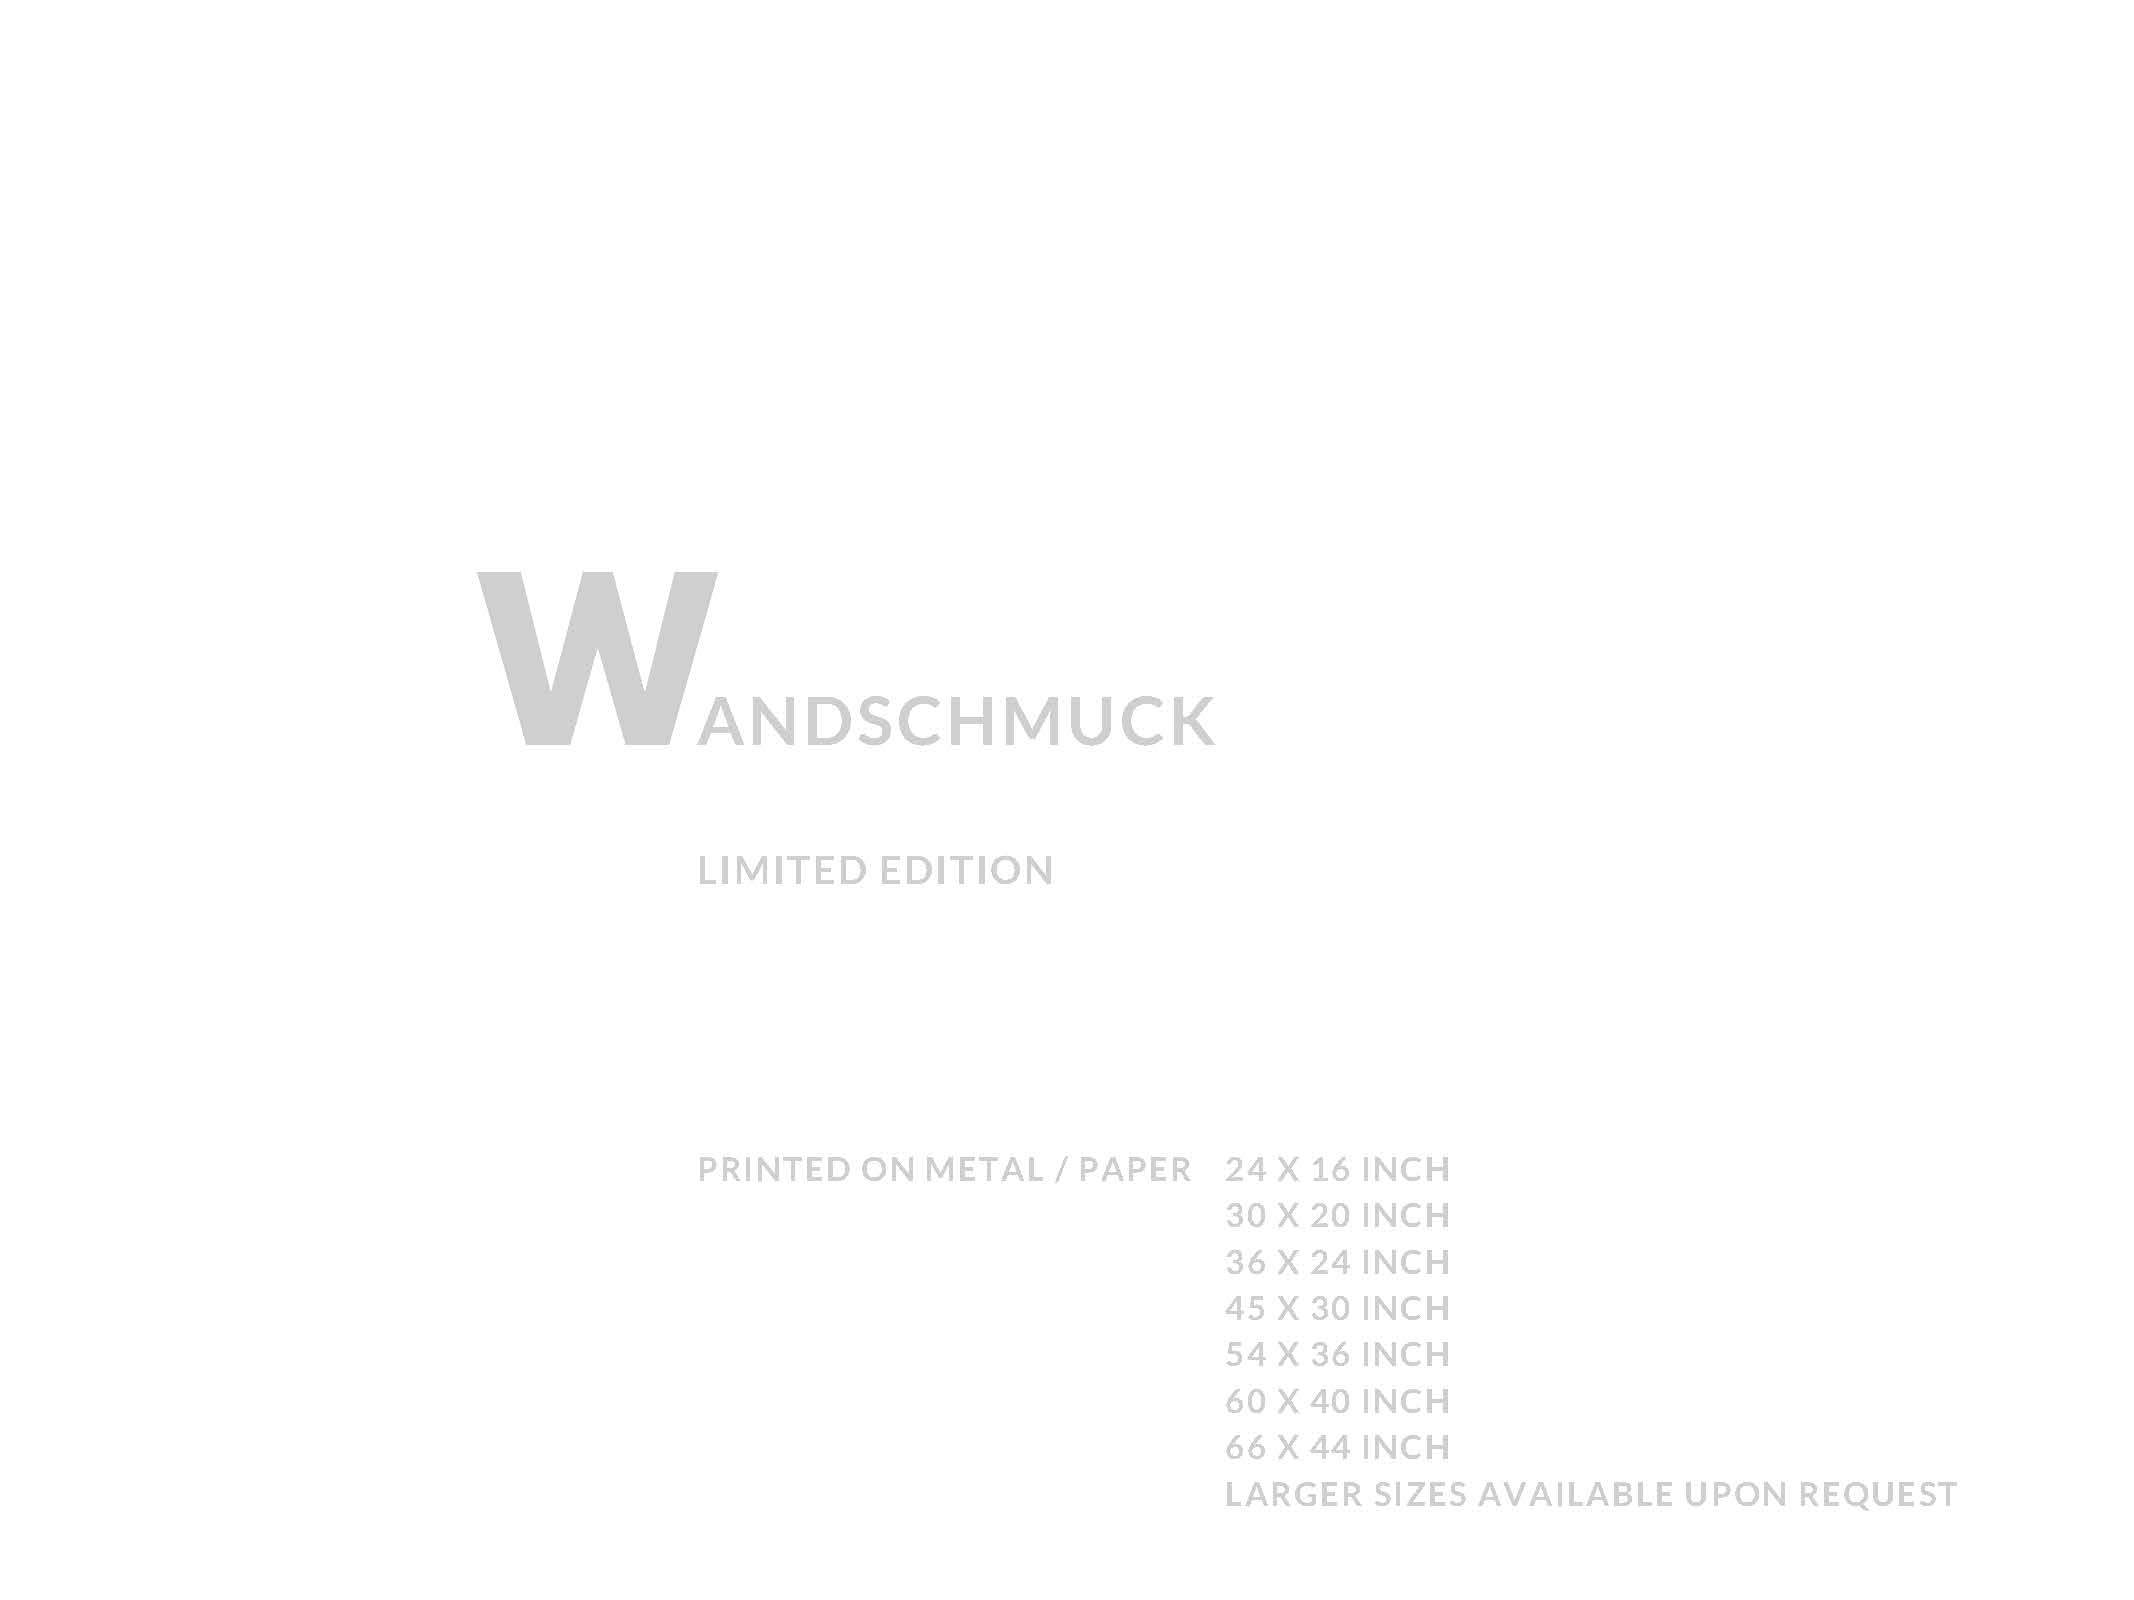 wandschmuck_reduced_Page_02.jpg